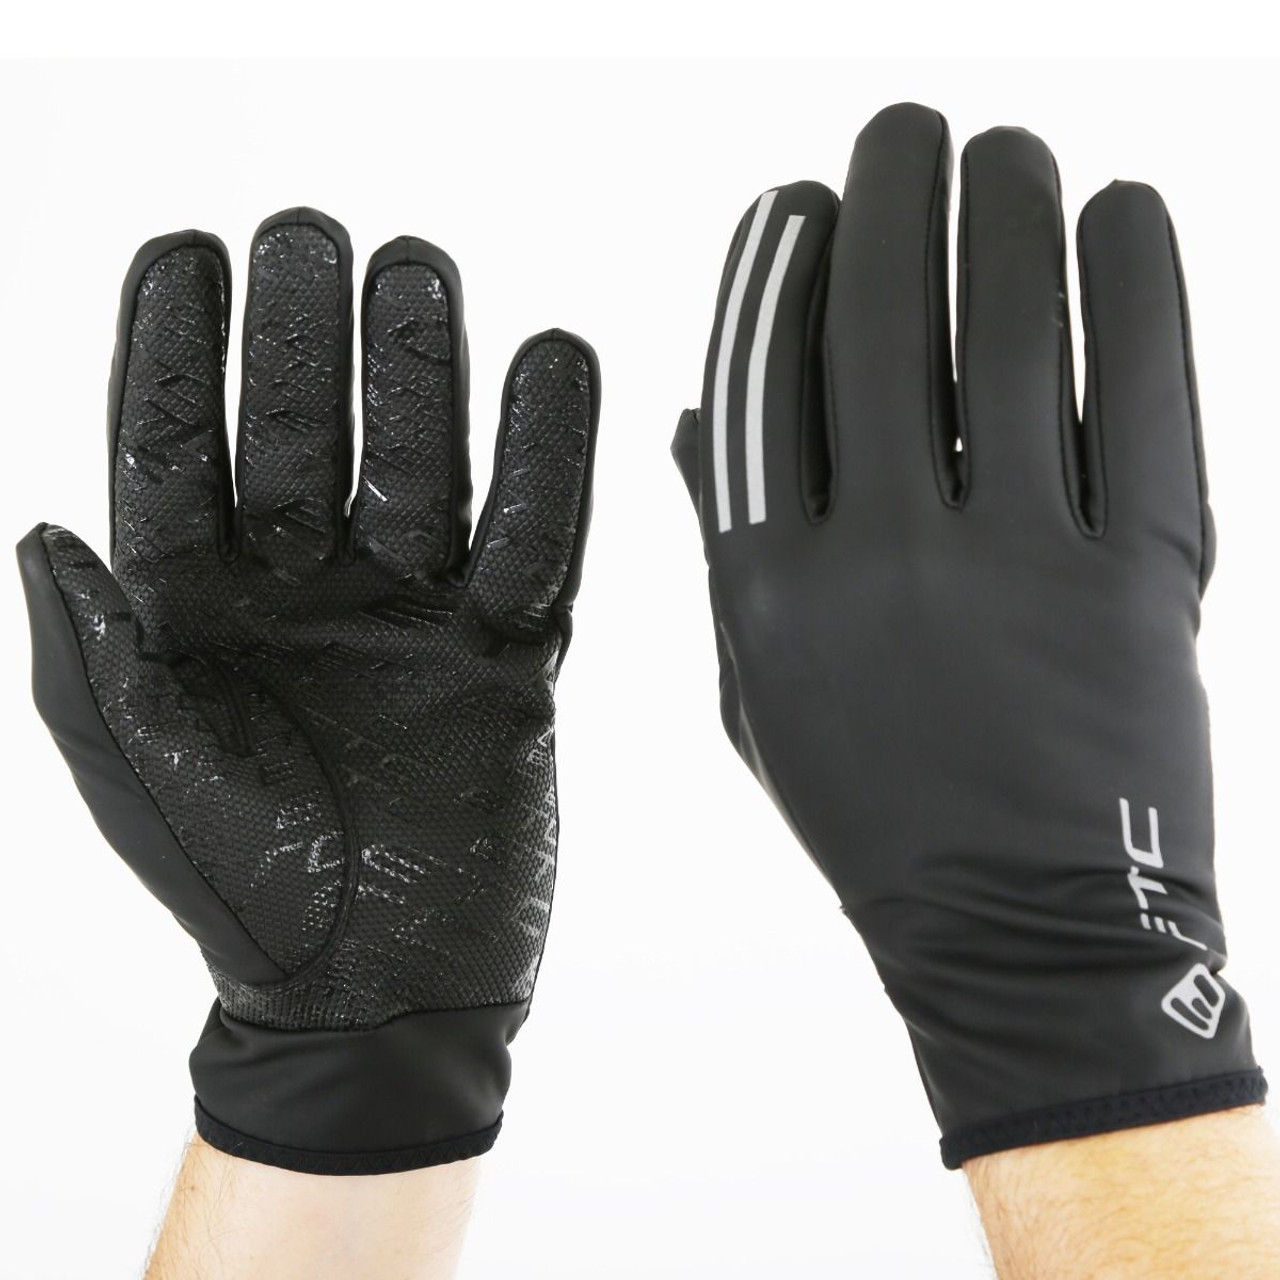 ETC Windster Winter Water Resistant Glove Black All Sizes